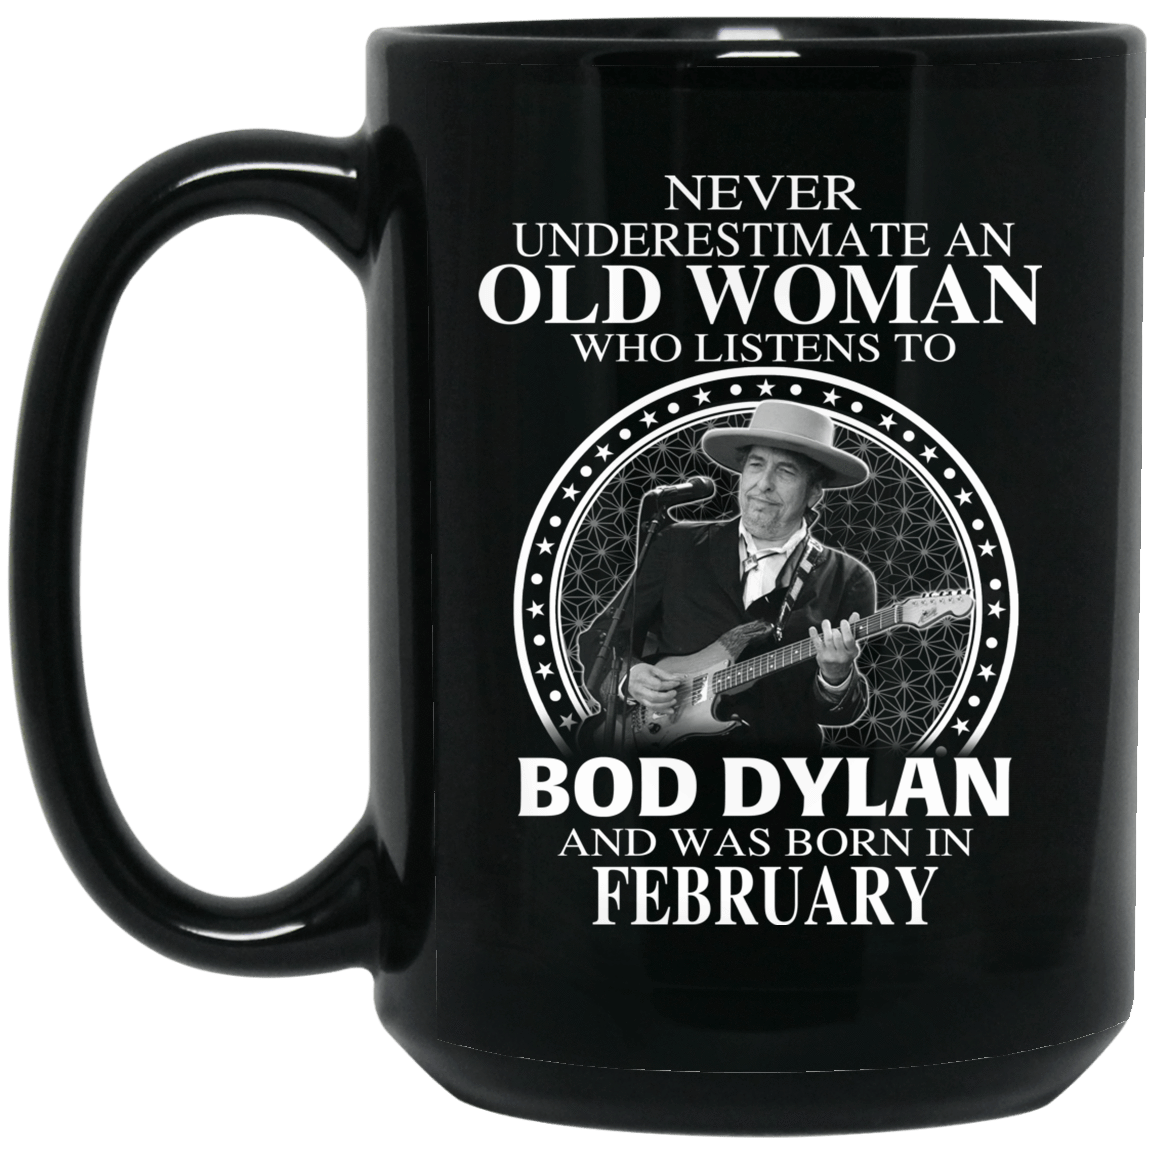 An Old Woman Who Listens To Bob Dylan And Was Born In February Mug 1066-10182-76154145-49311 - Tee Ript